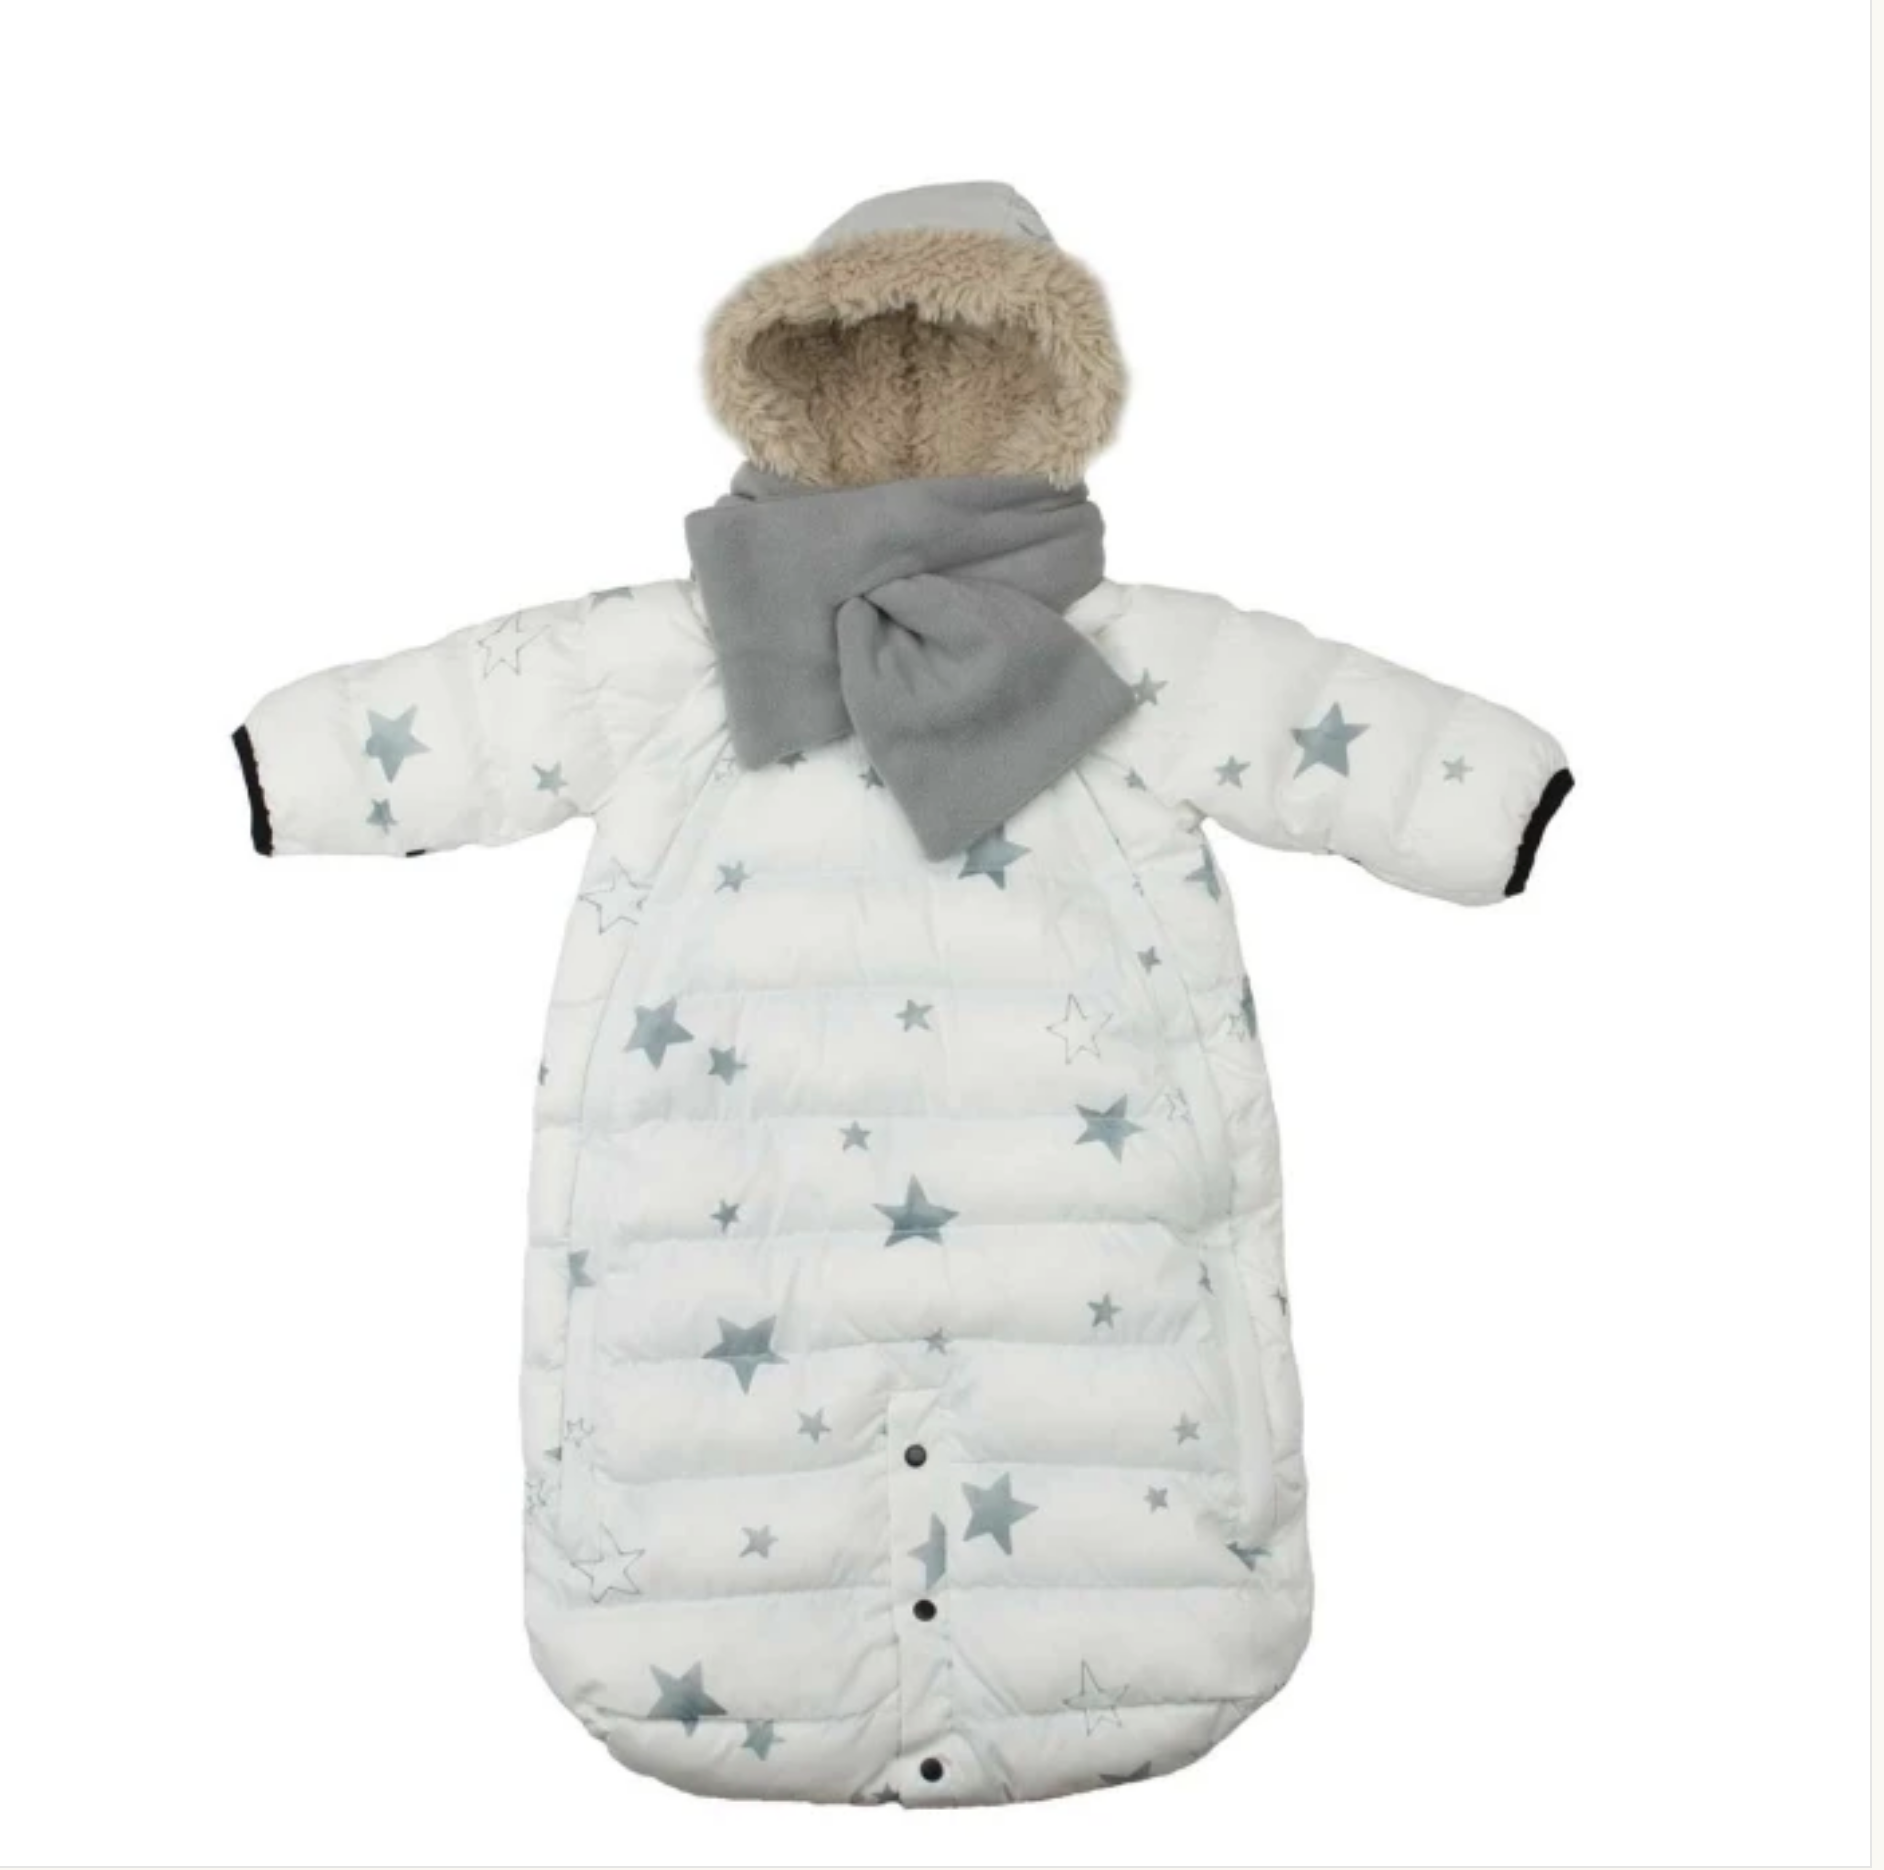 7 AM Enfant Outerwear at Bonjour Baby Baskets, Best baby gifts